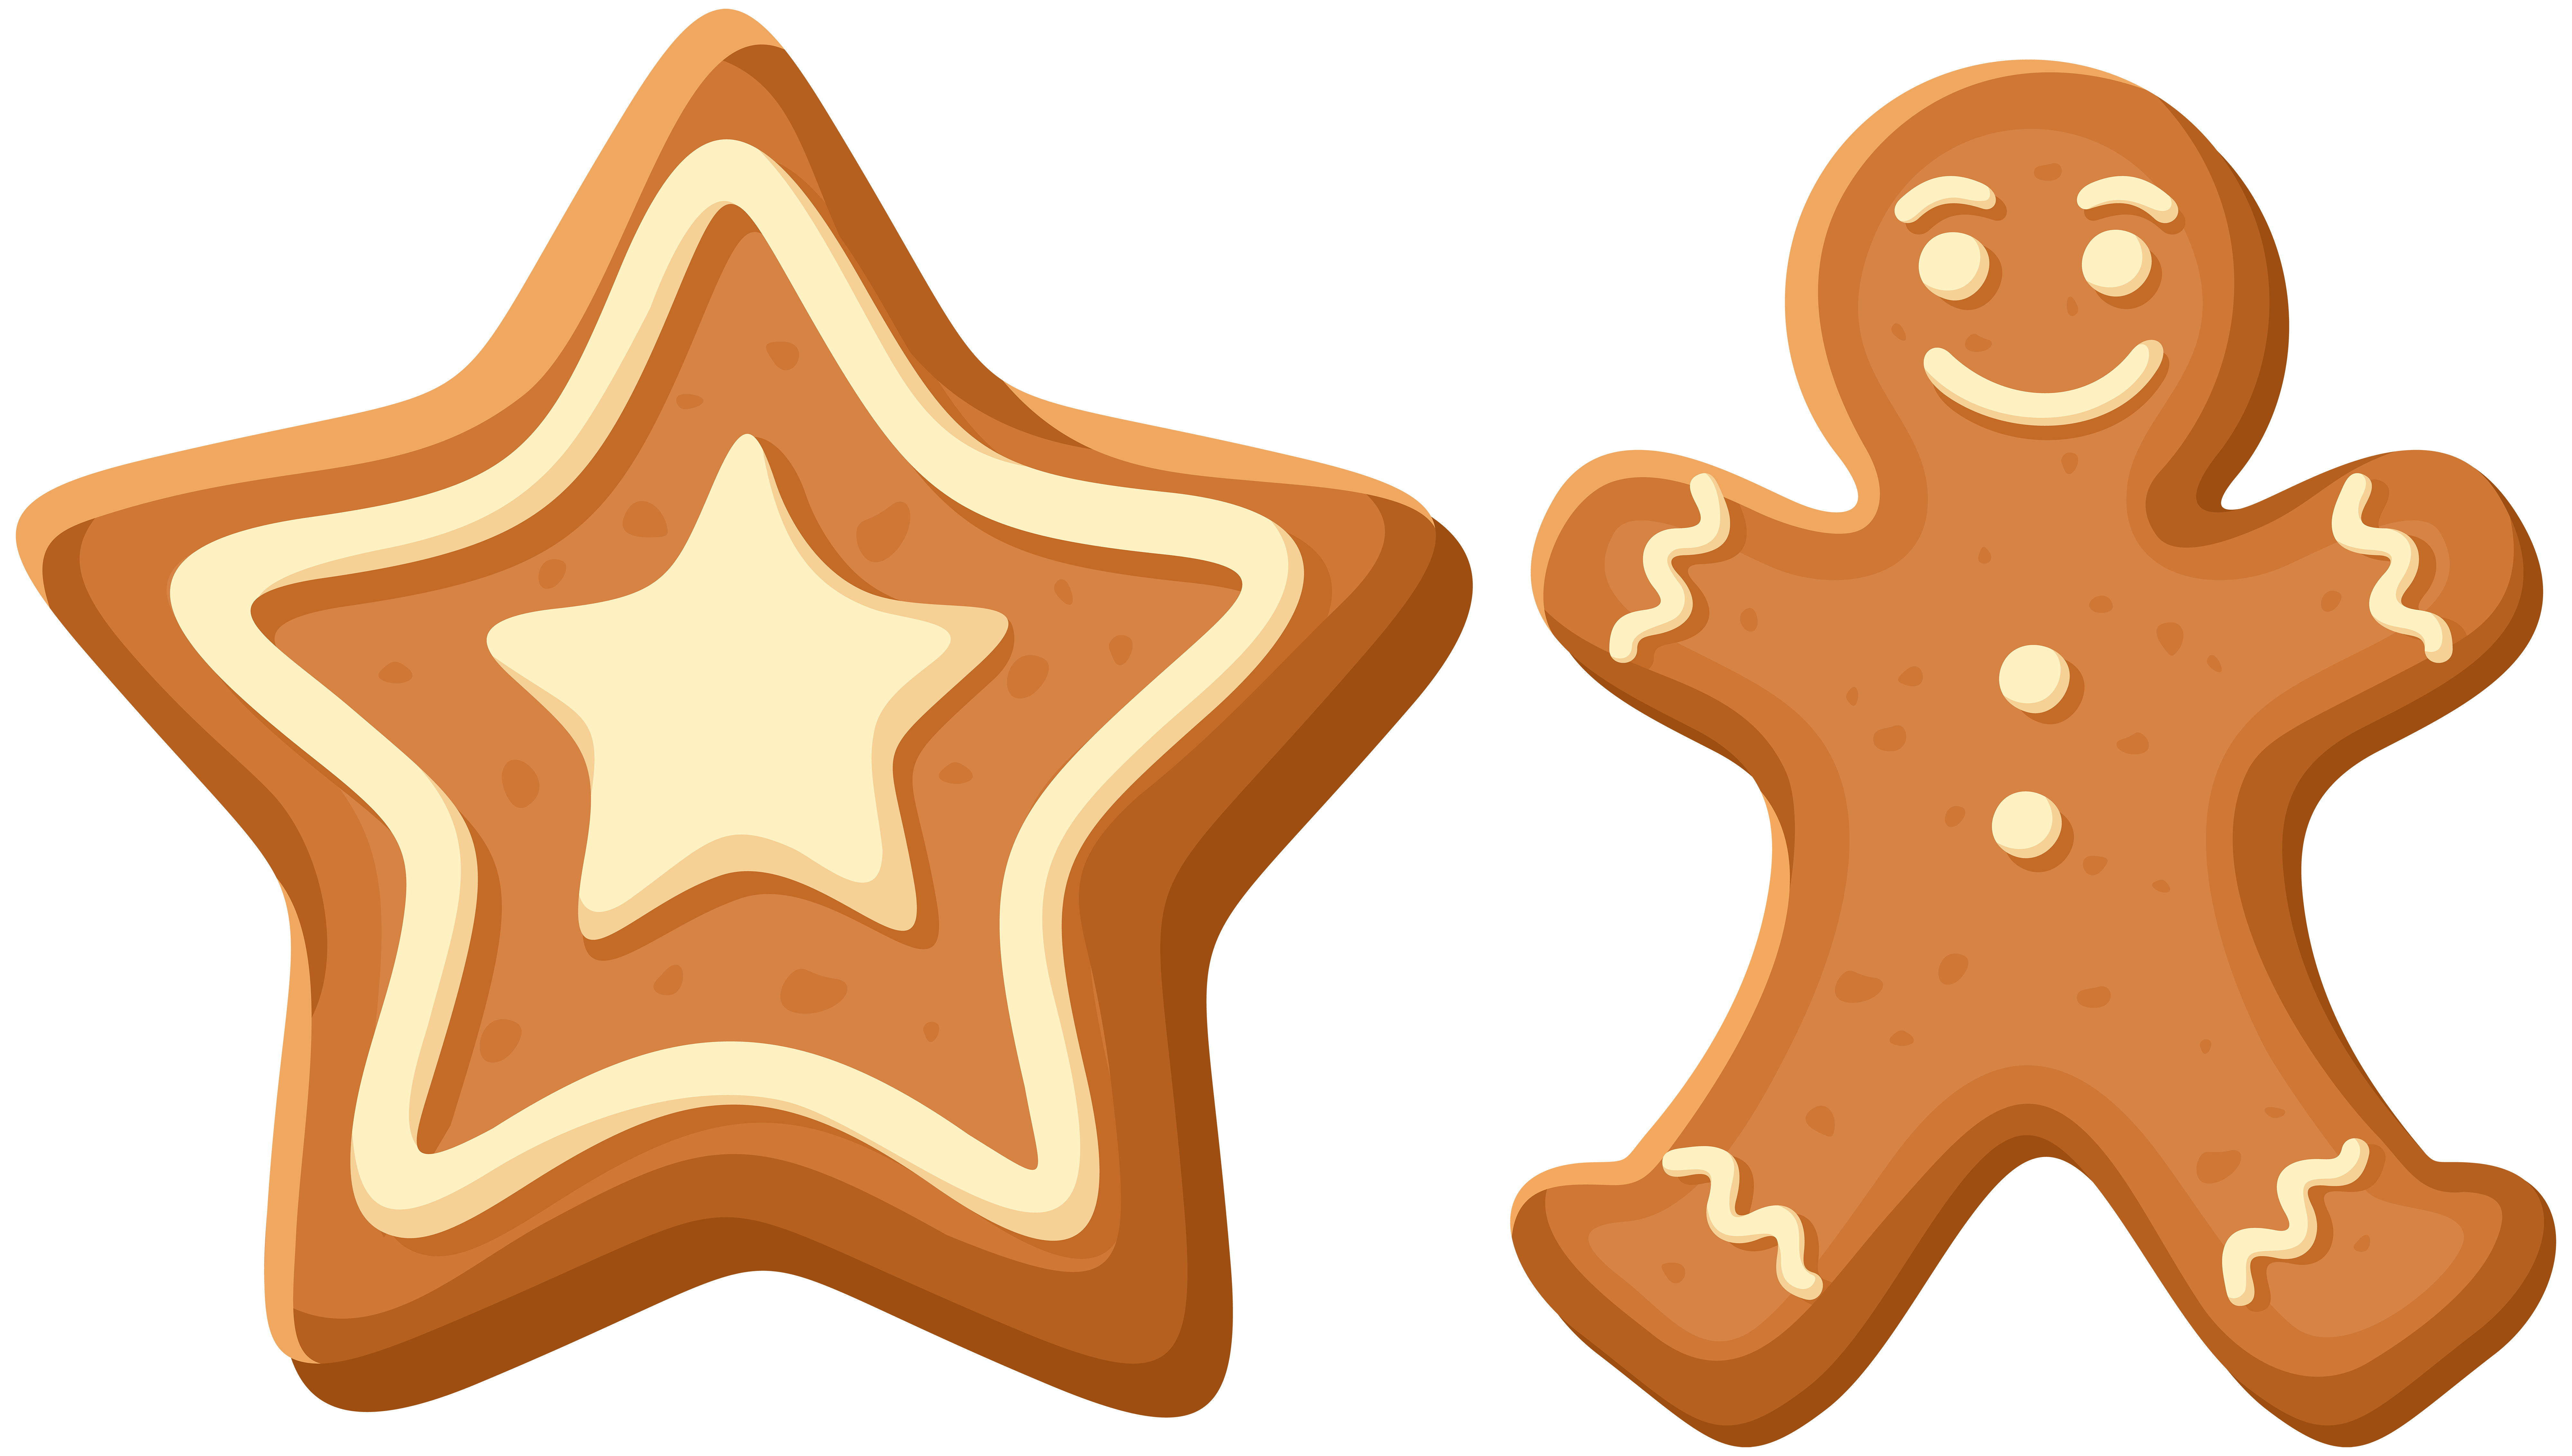 Icing gingerbread the man. Cookies clipart house